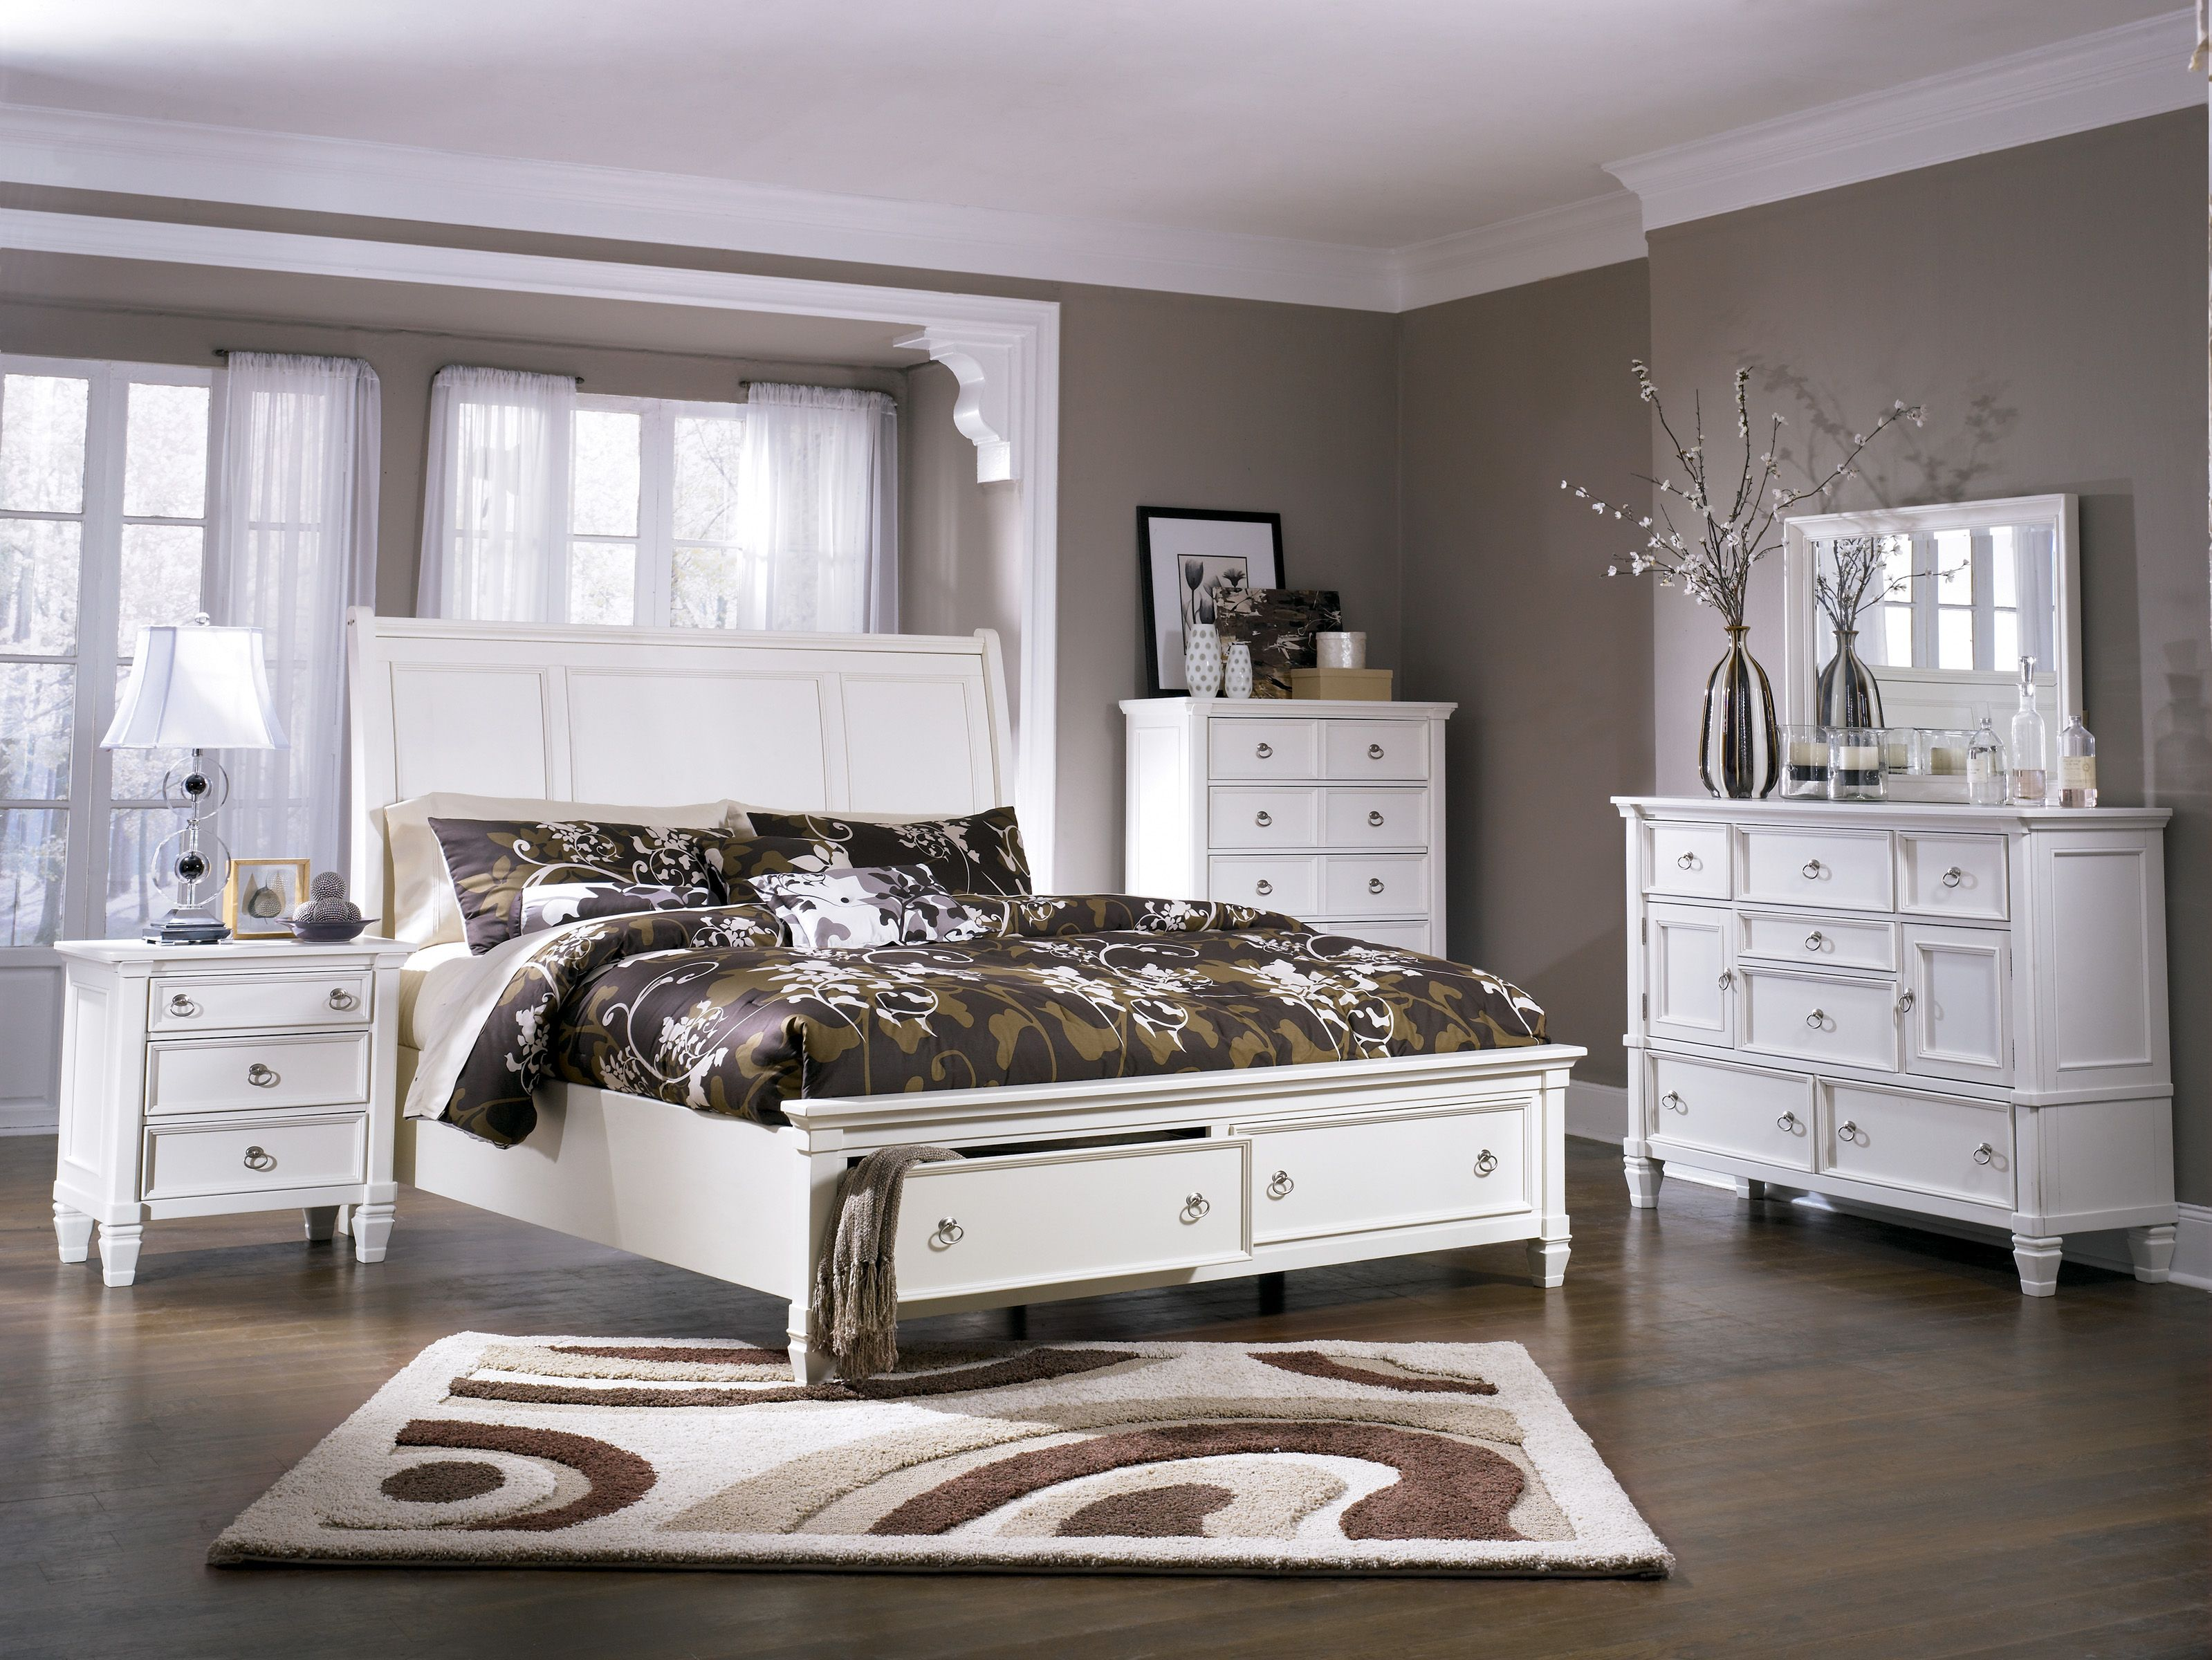 Ashley white bedroom furniture - The Prentice Sleigh Storage Bedroom Set From Ashley Furniture Homestore Maybe This One Because Of The Storage Option